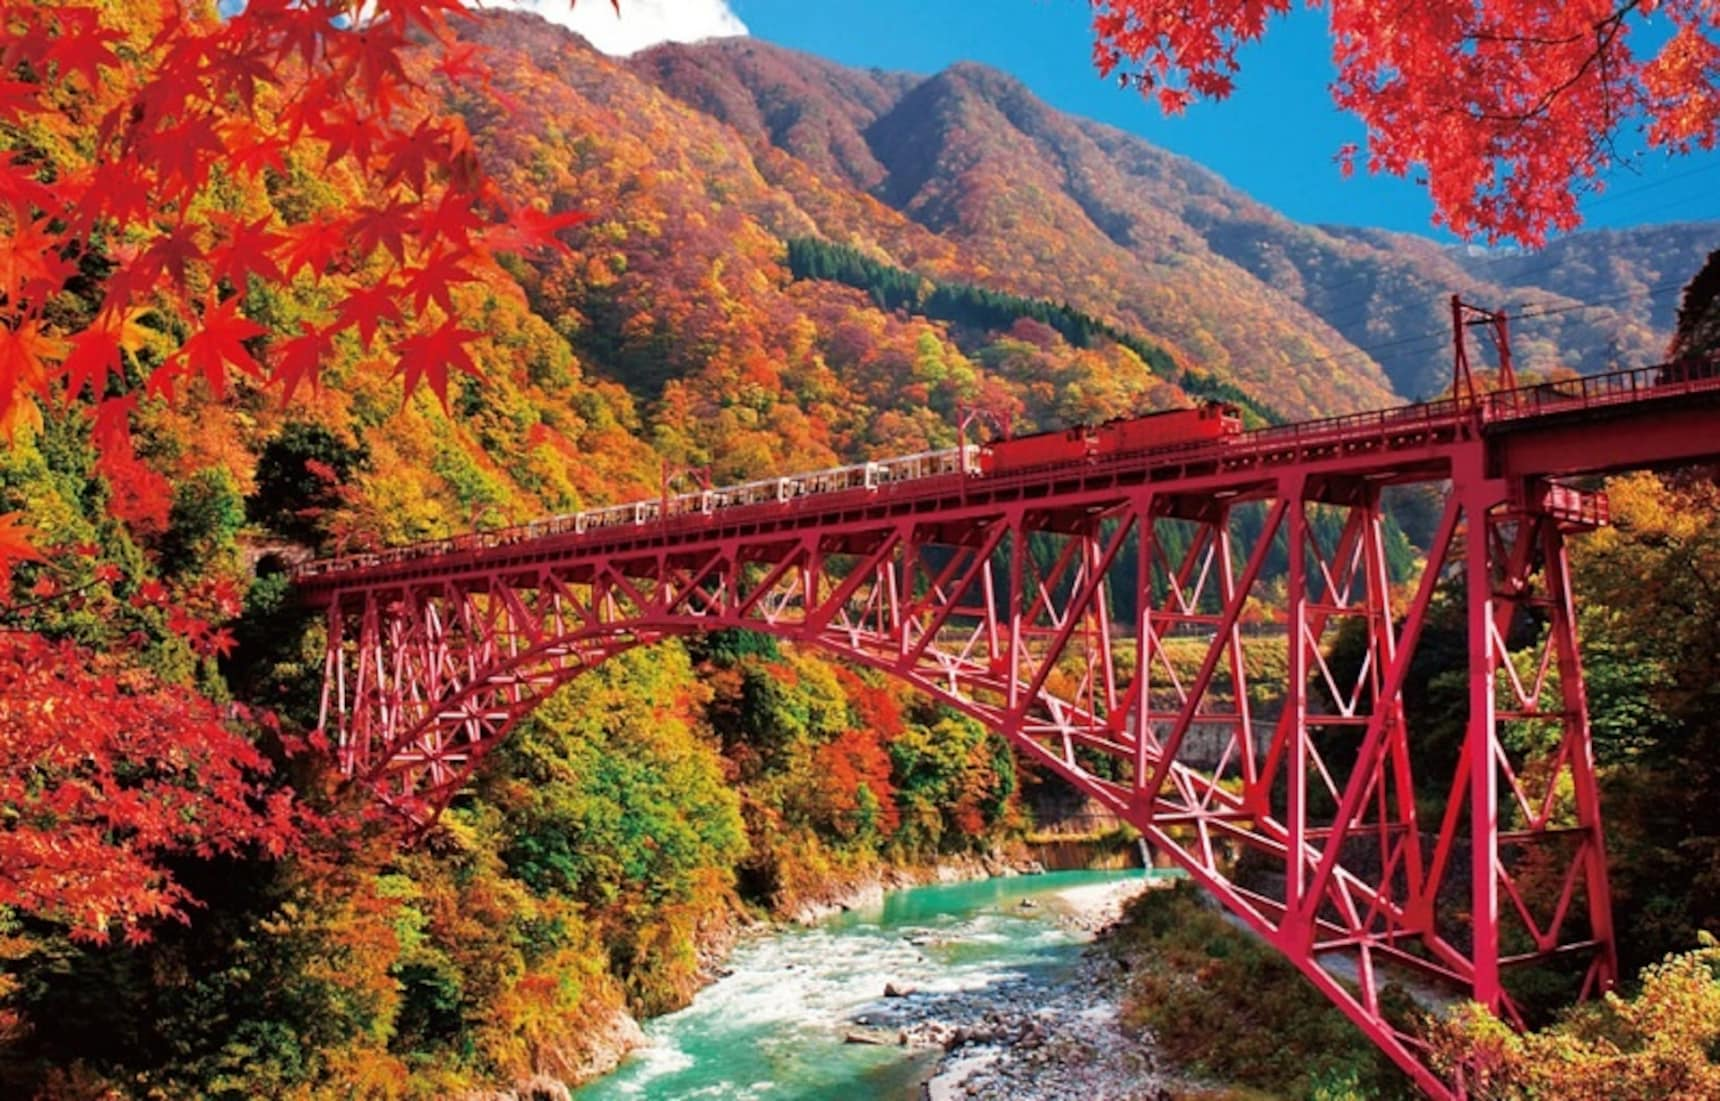 10 Amazing Photos of Japanese Trains